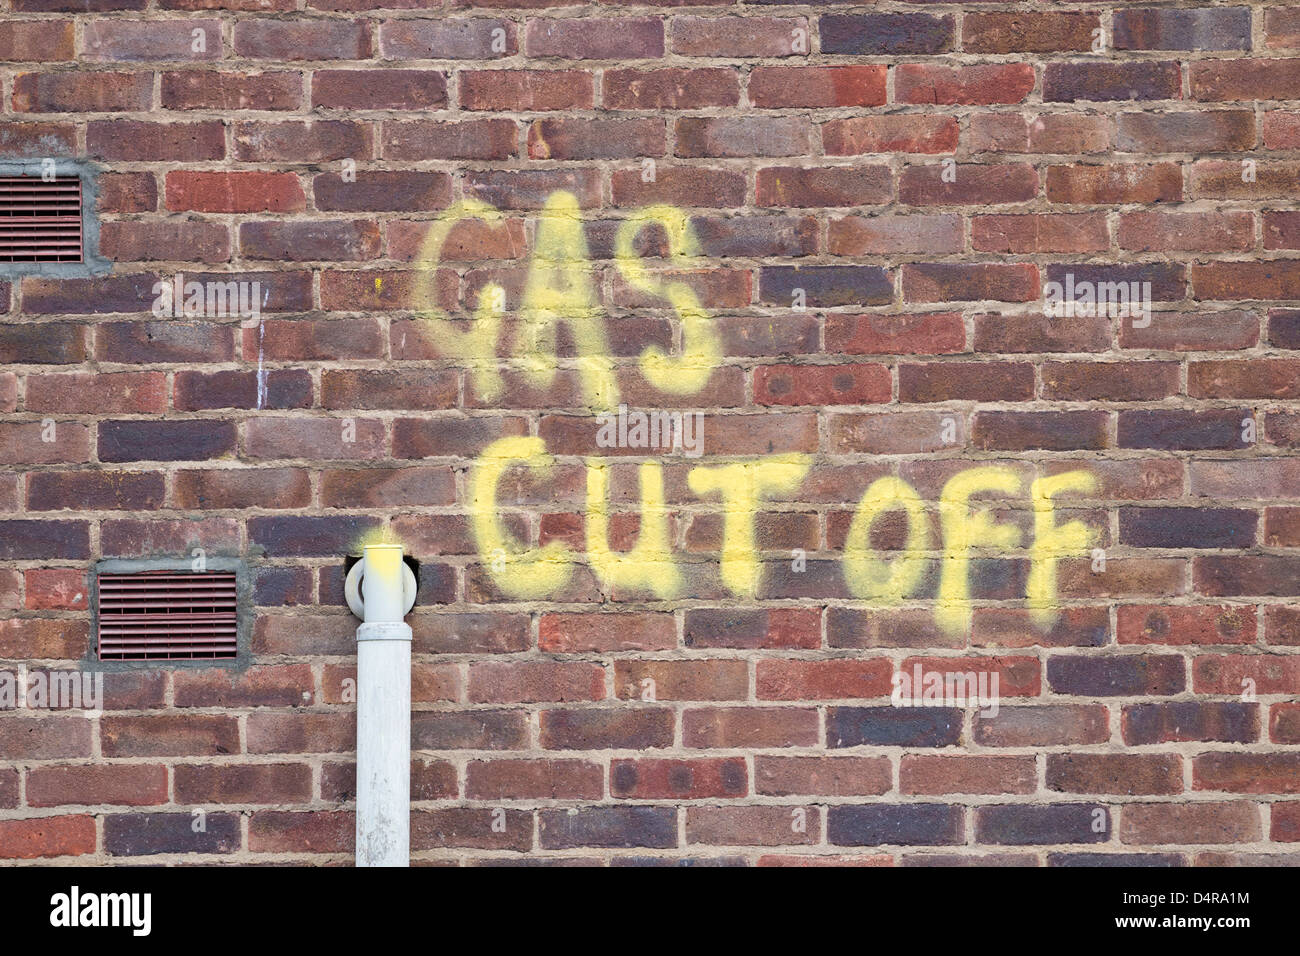 Gas cut off painted on building wall near pipe - Stock Image